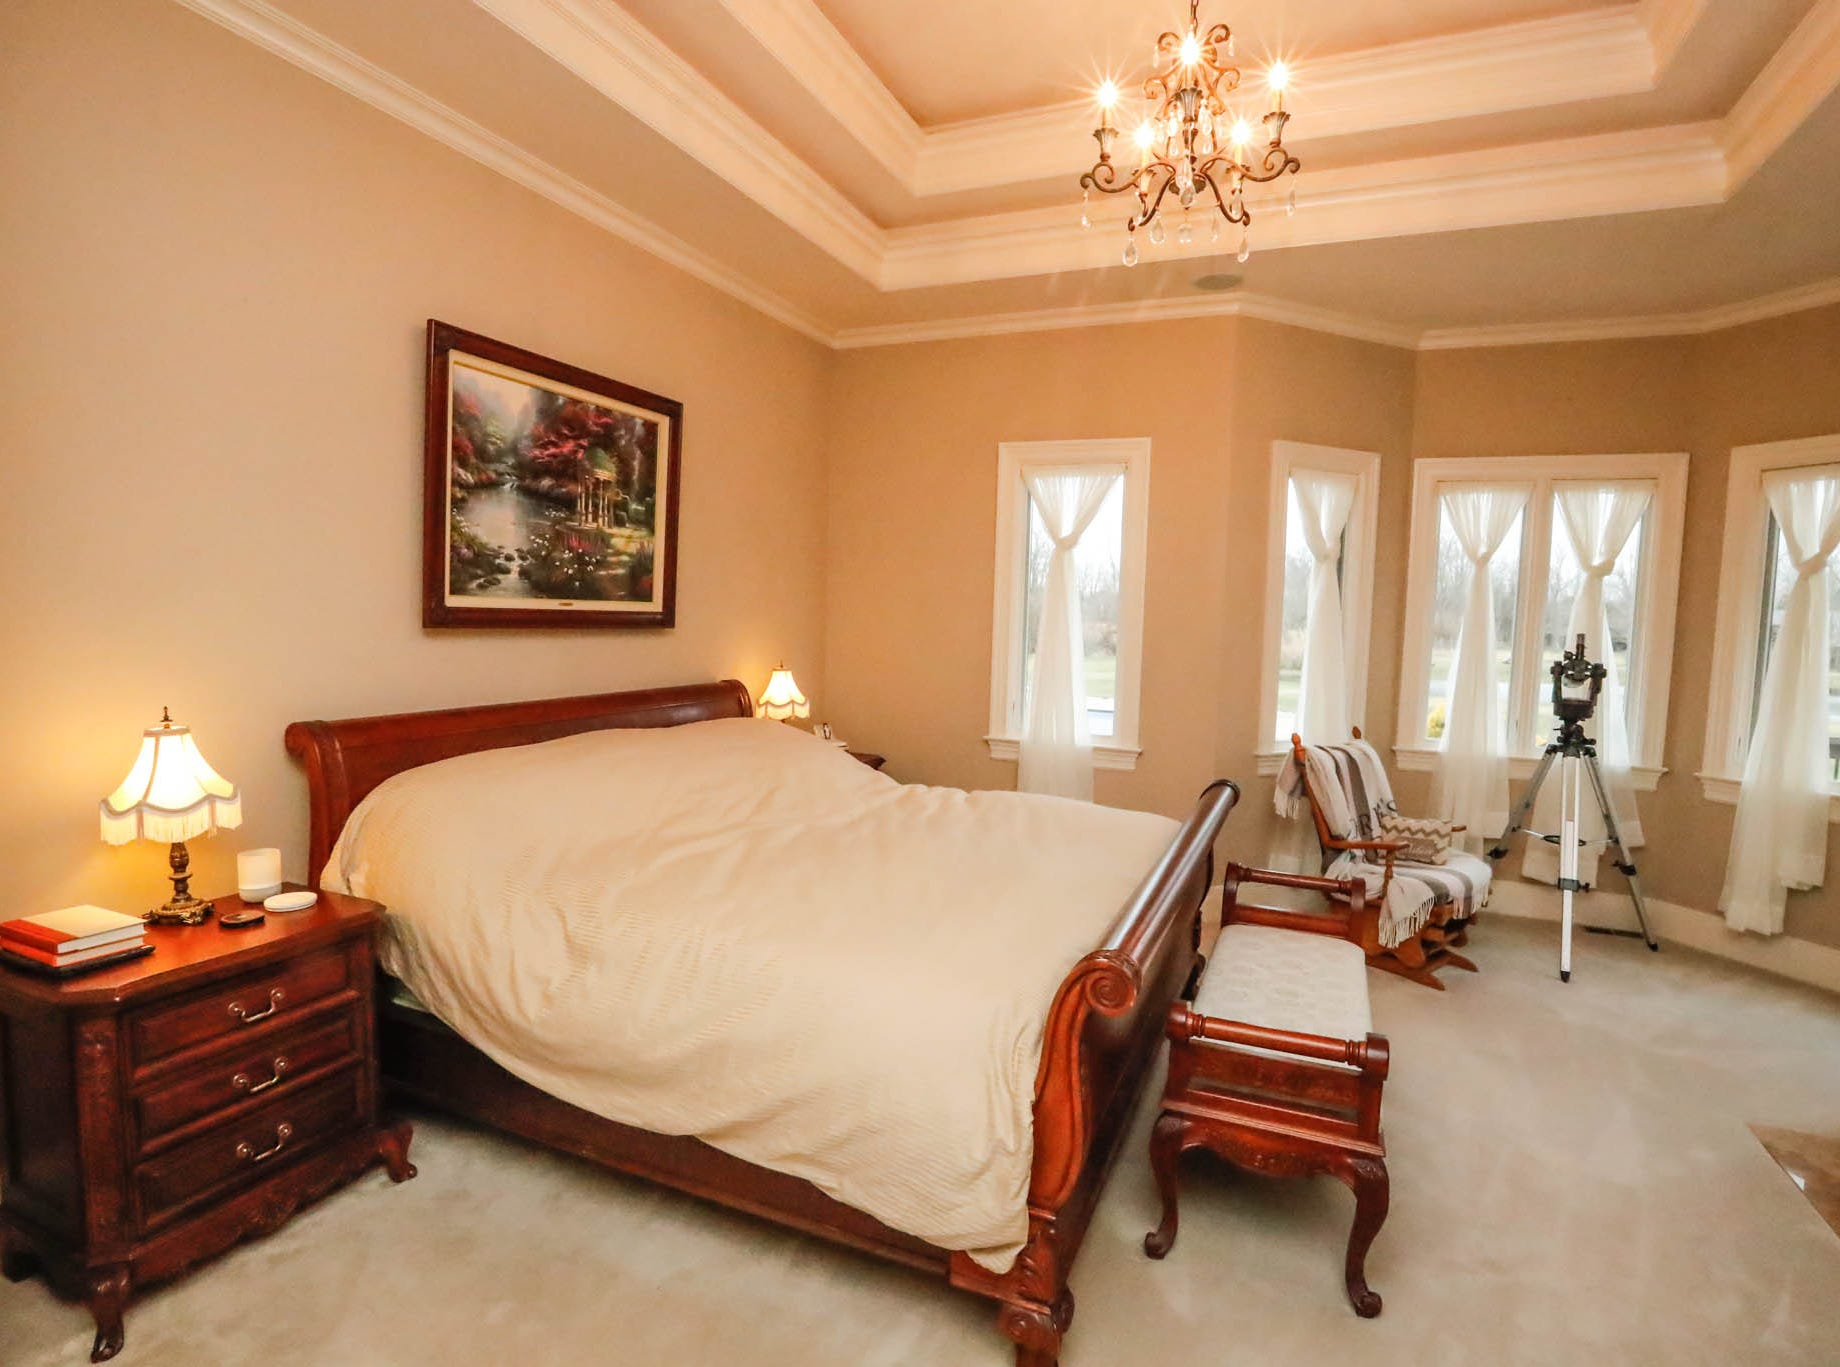 The master suite features a large walk-in closet and master bath in a traditional $2m home up for sale in Bargersville Ind. on Wednesday, Jan. 9, 2019. The house sits on 8.1 acres.